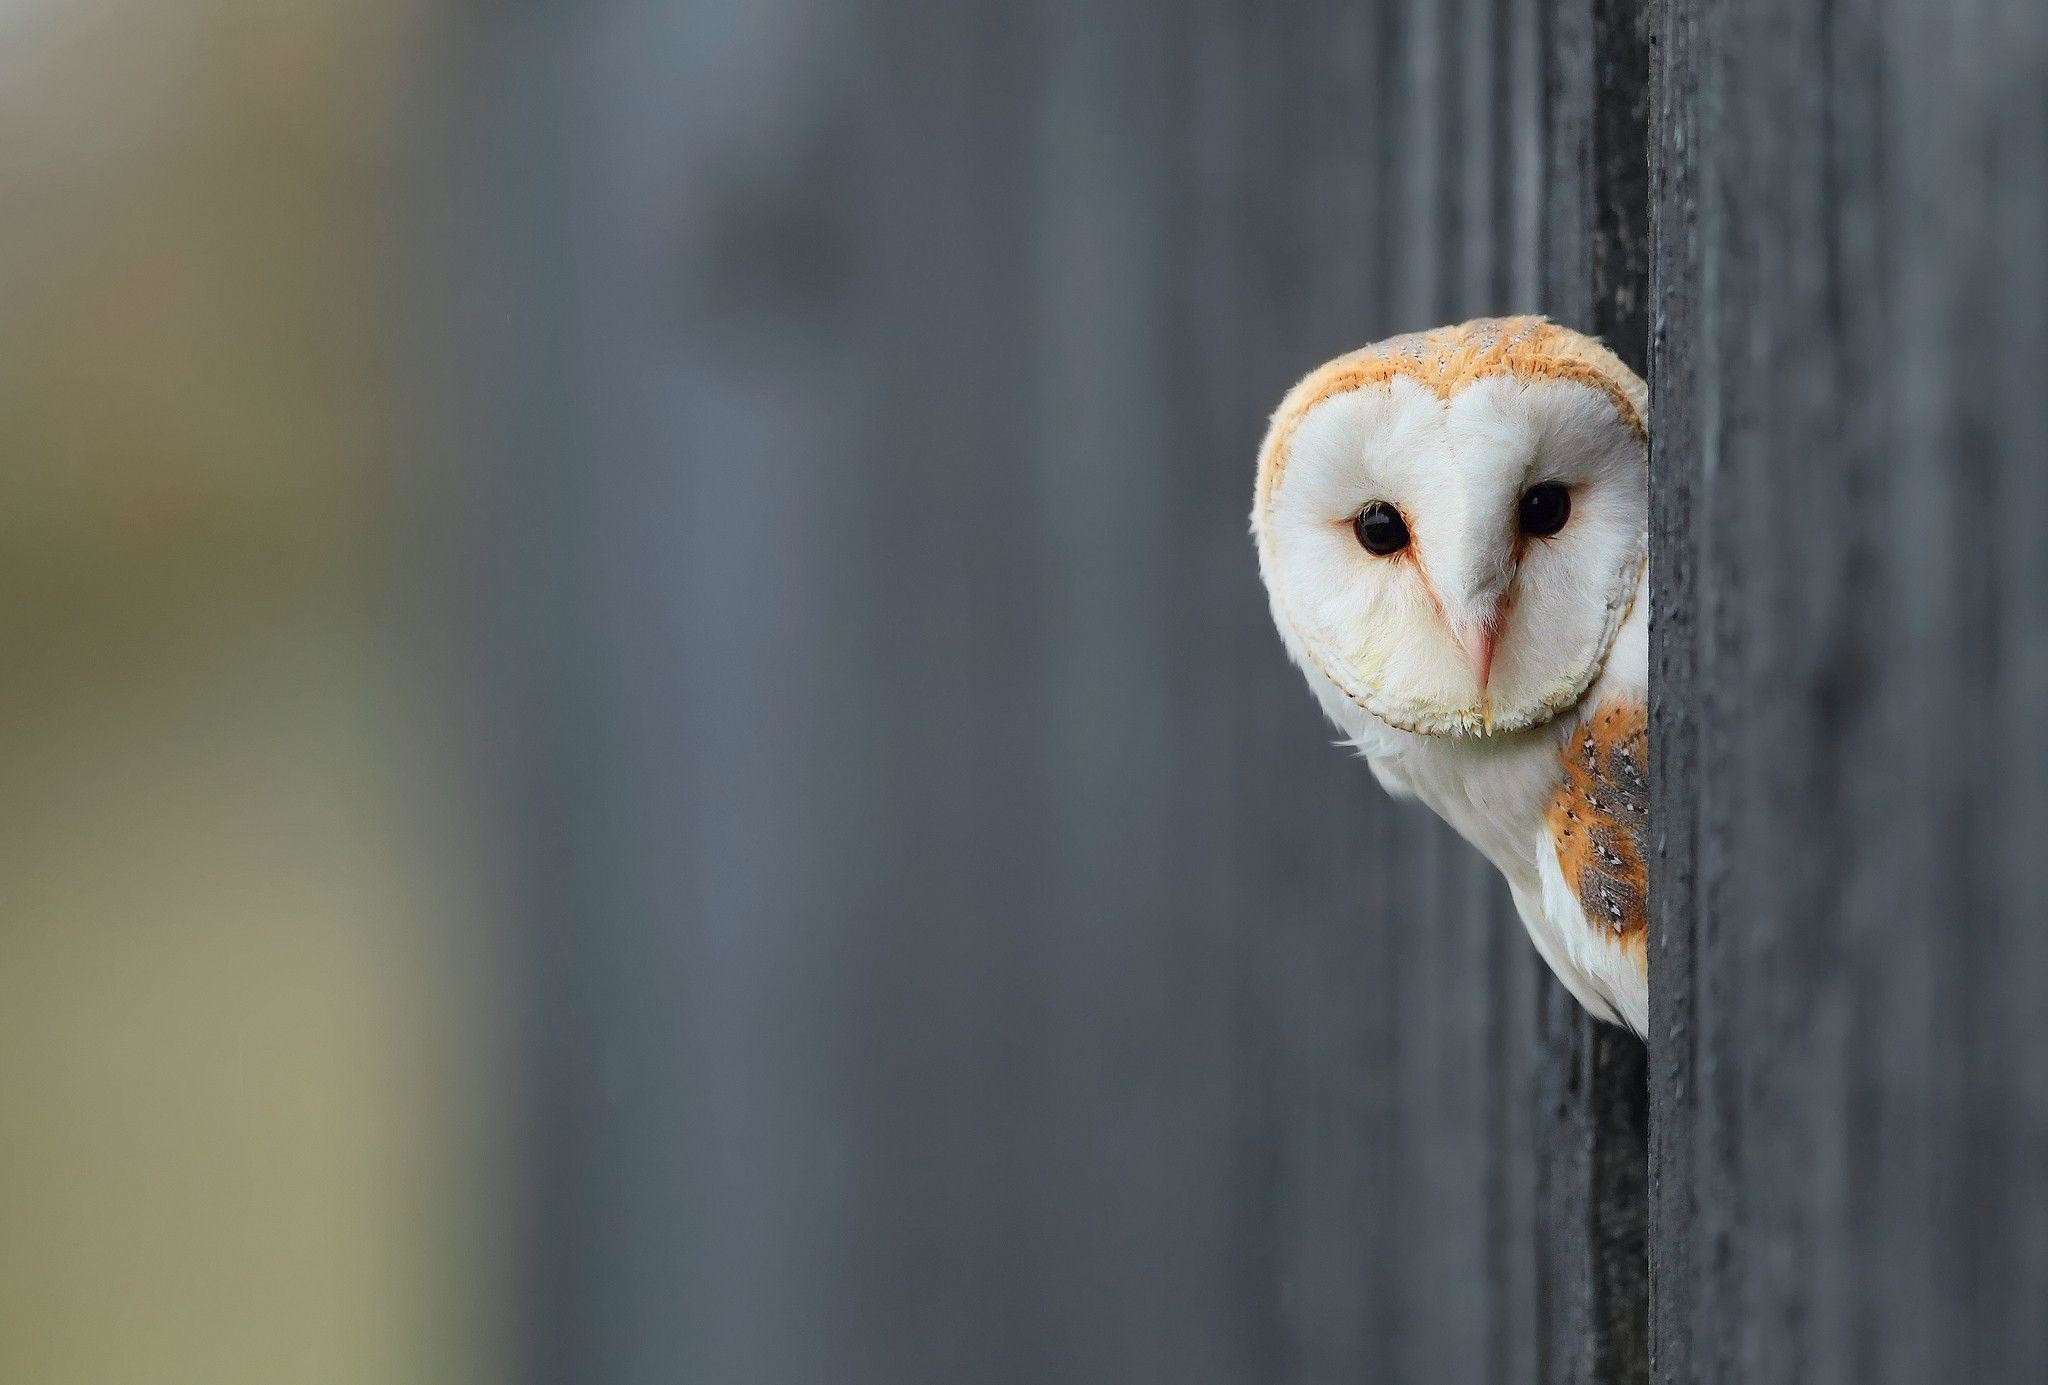 2048x1385 White Owl Wallpaper | HD Wallpapers, backgrounds high resolution .